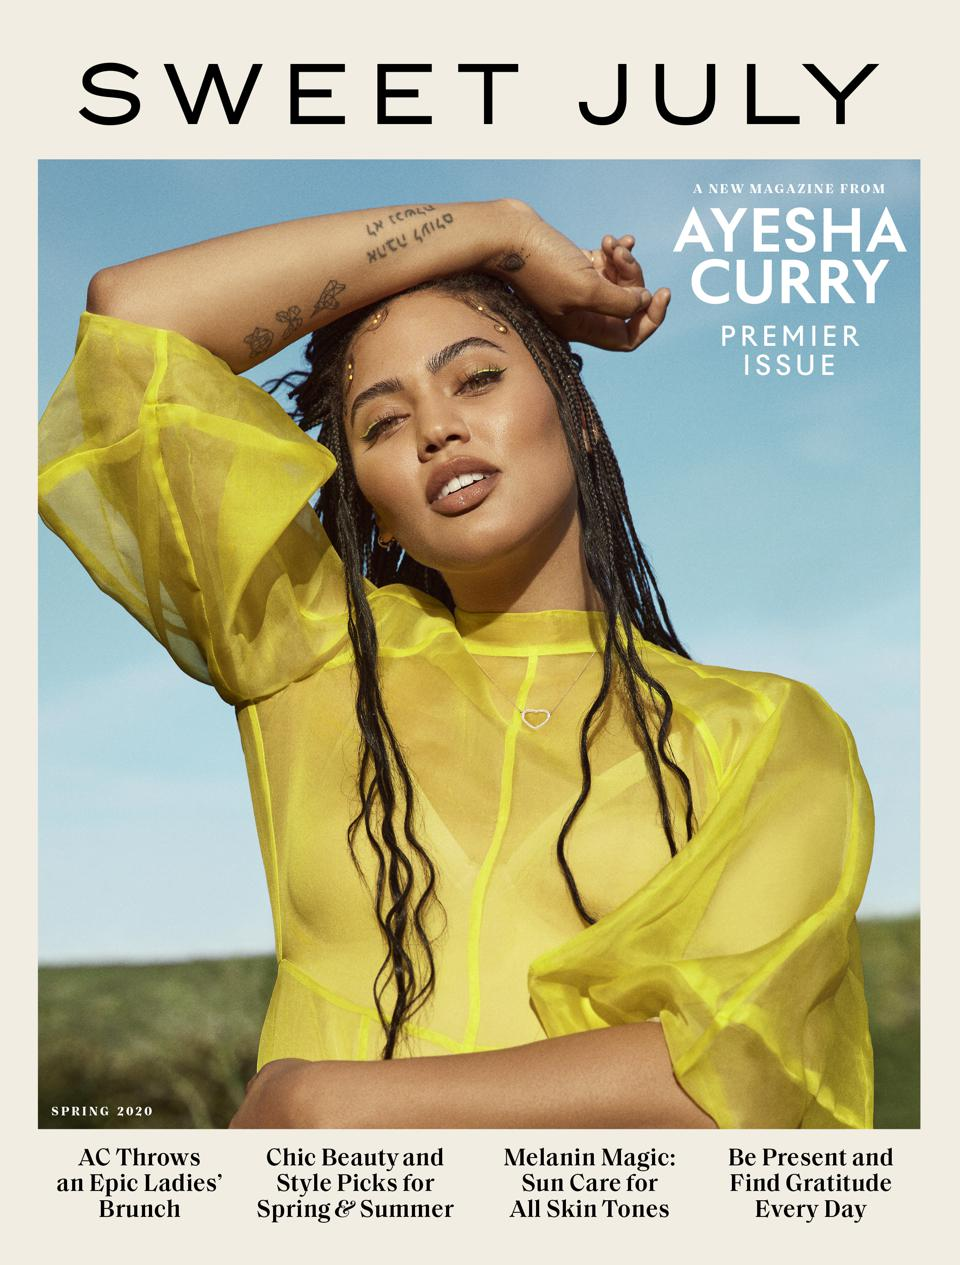 Ayesha Curry's first Sweet July cover.